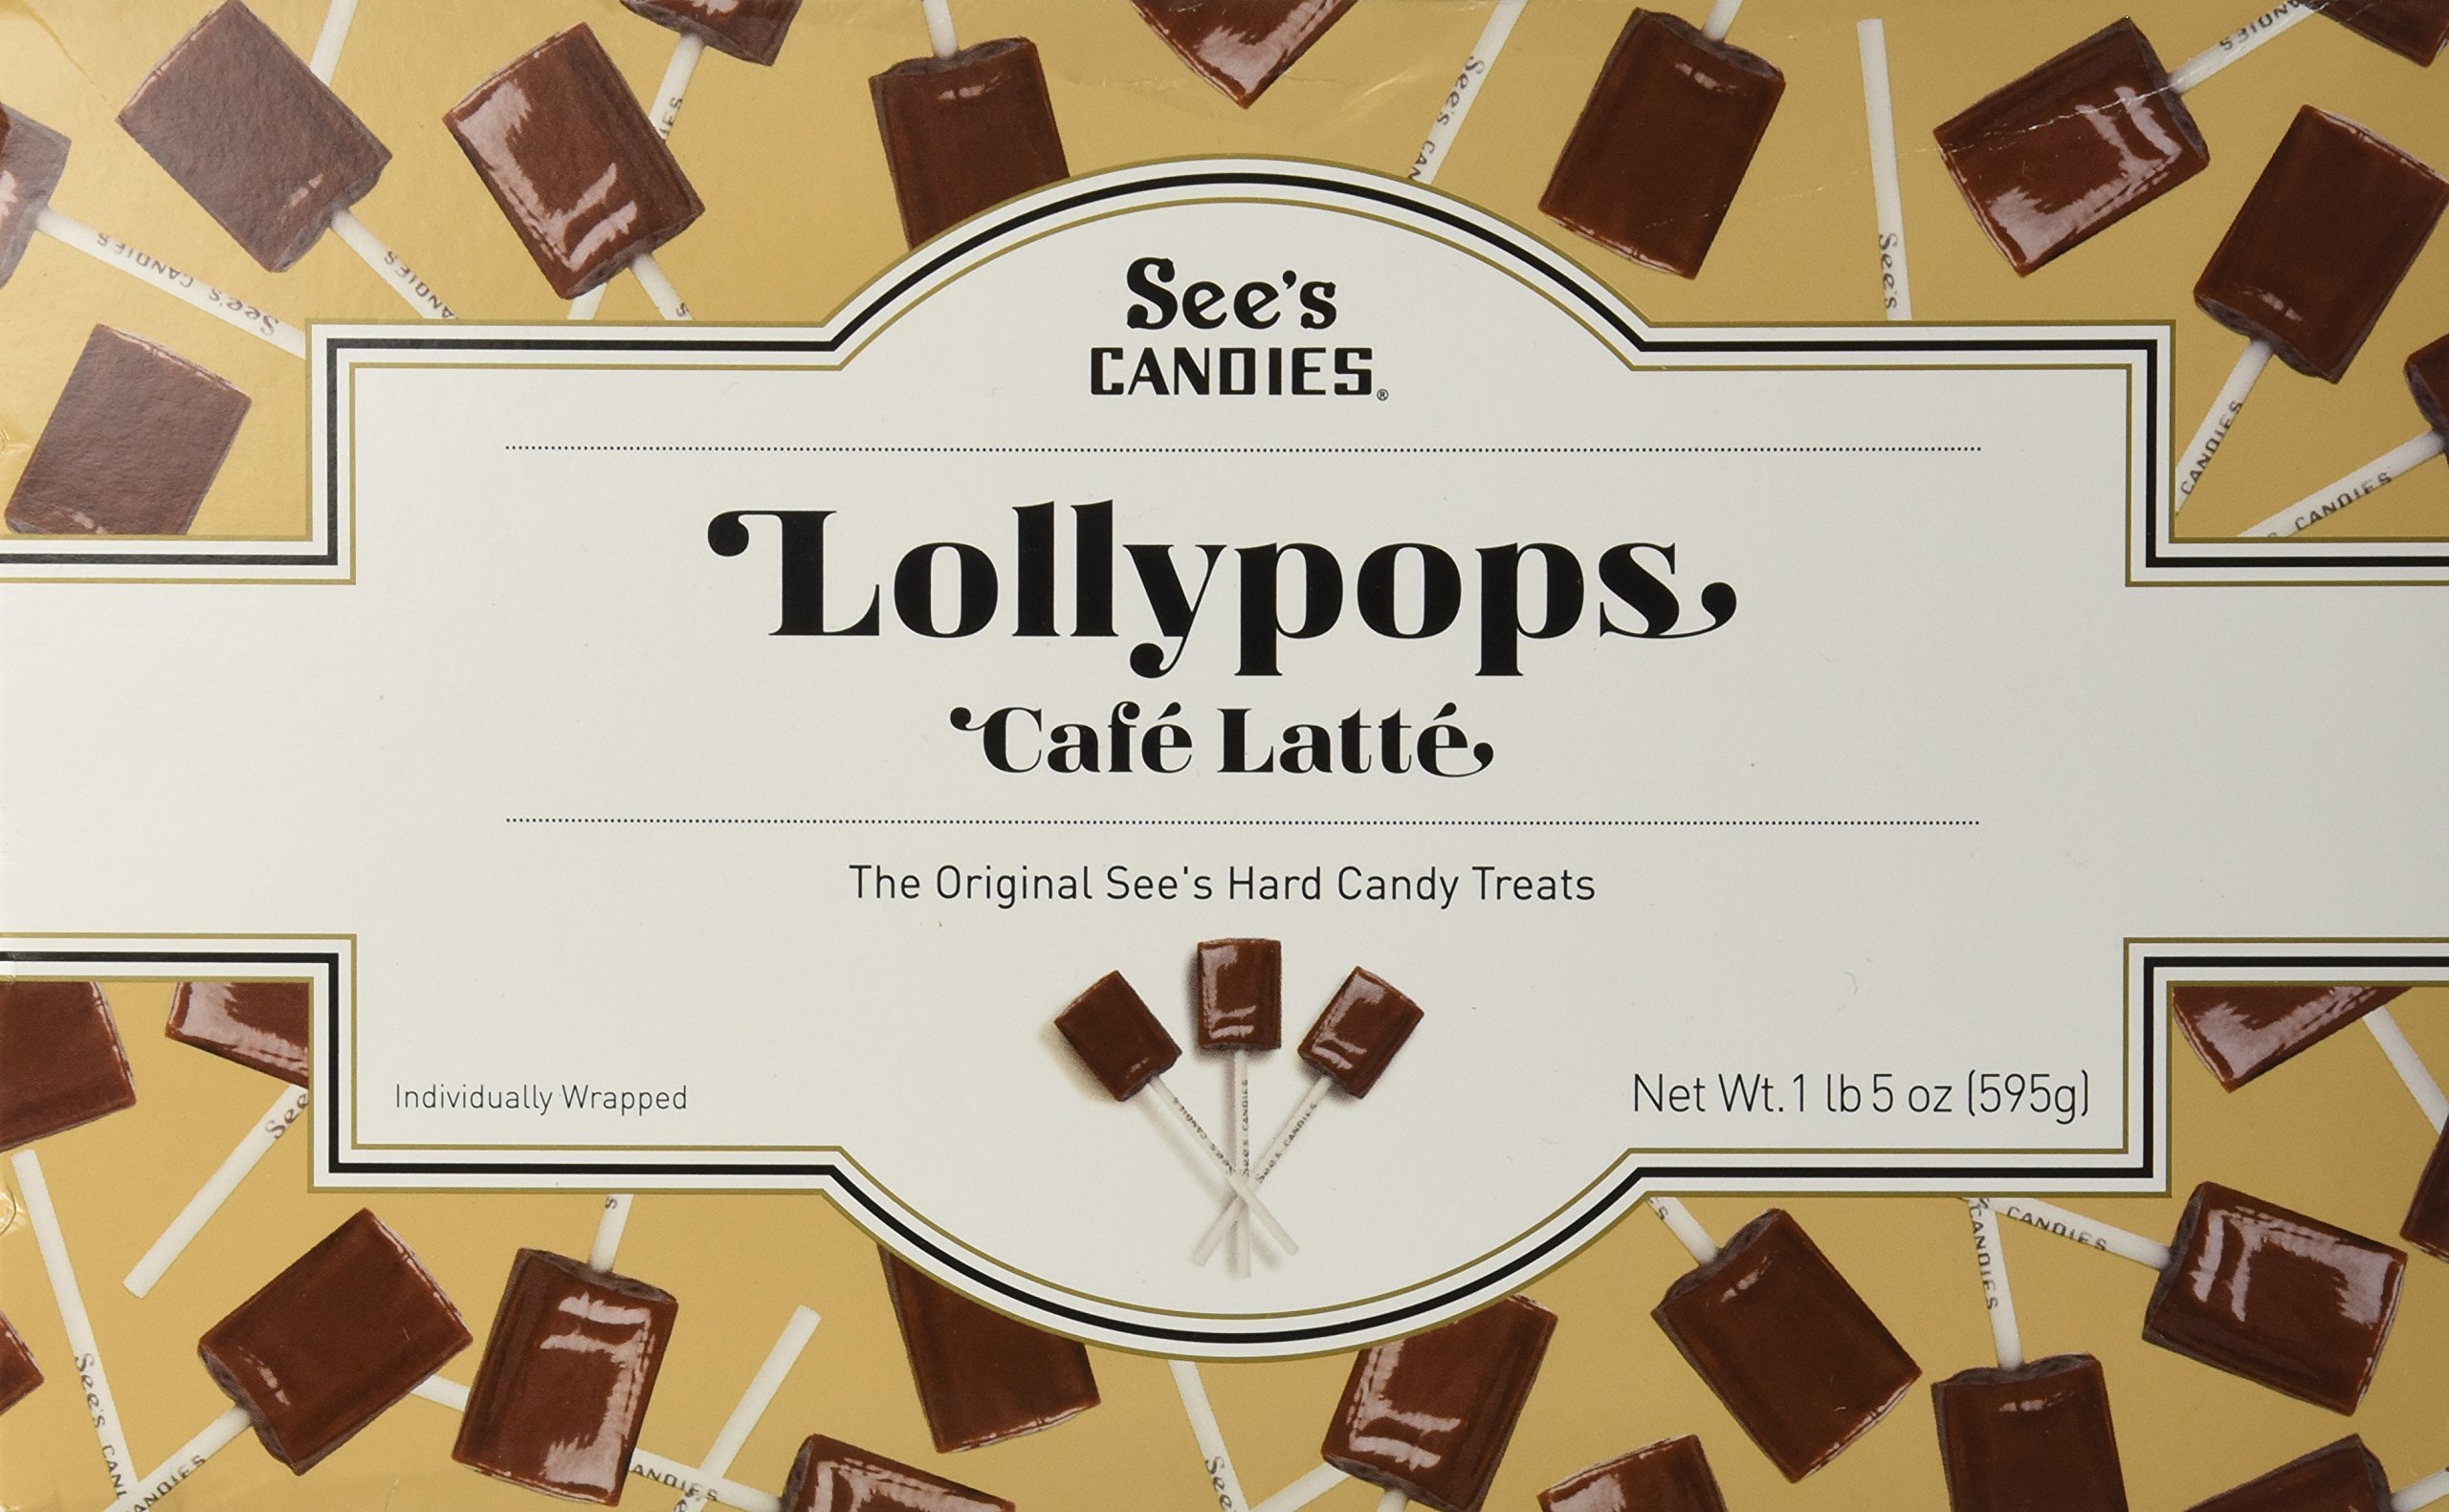 See's Candies 1 lb. 5 oz. Cafe Latte Lollypops by See's Candies